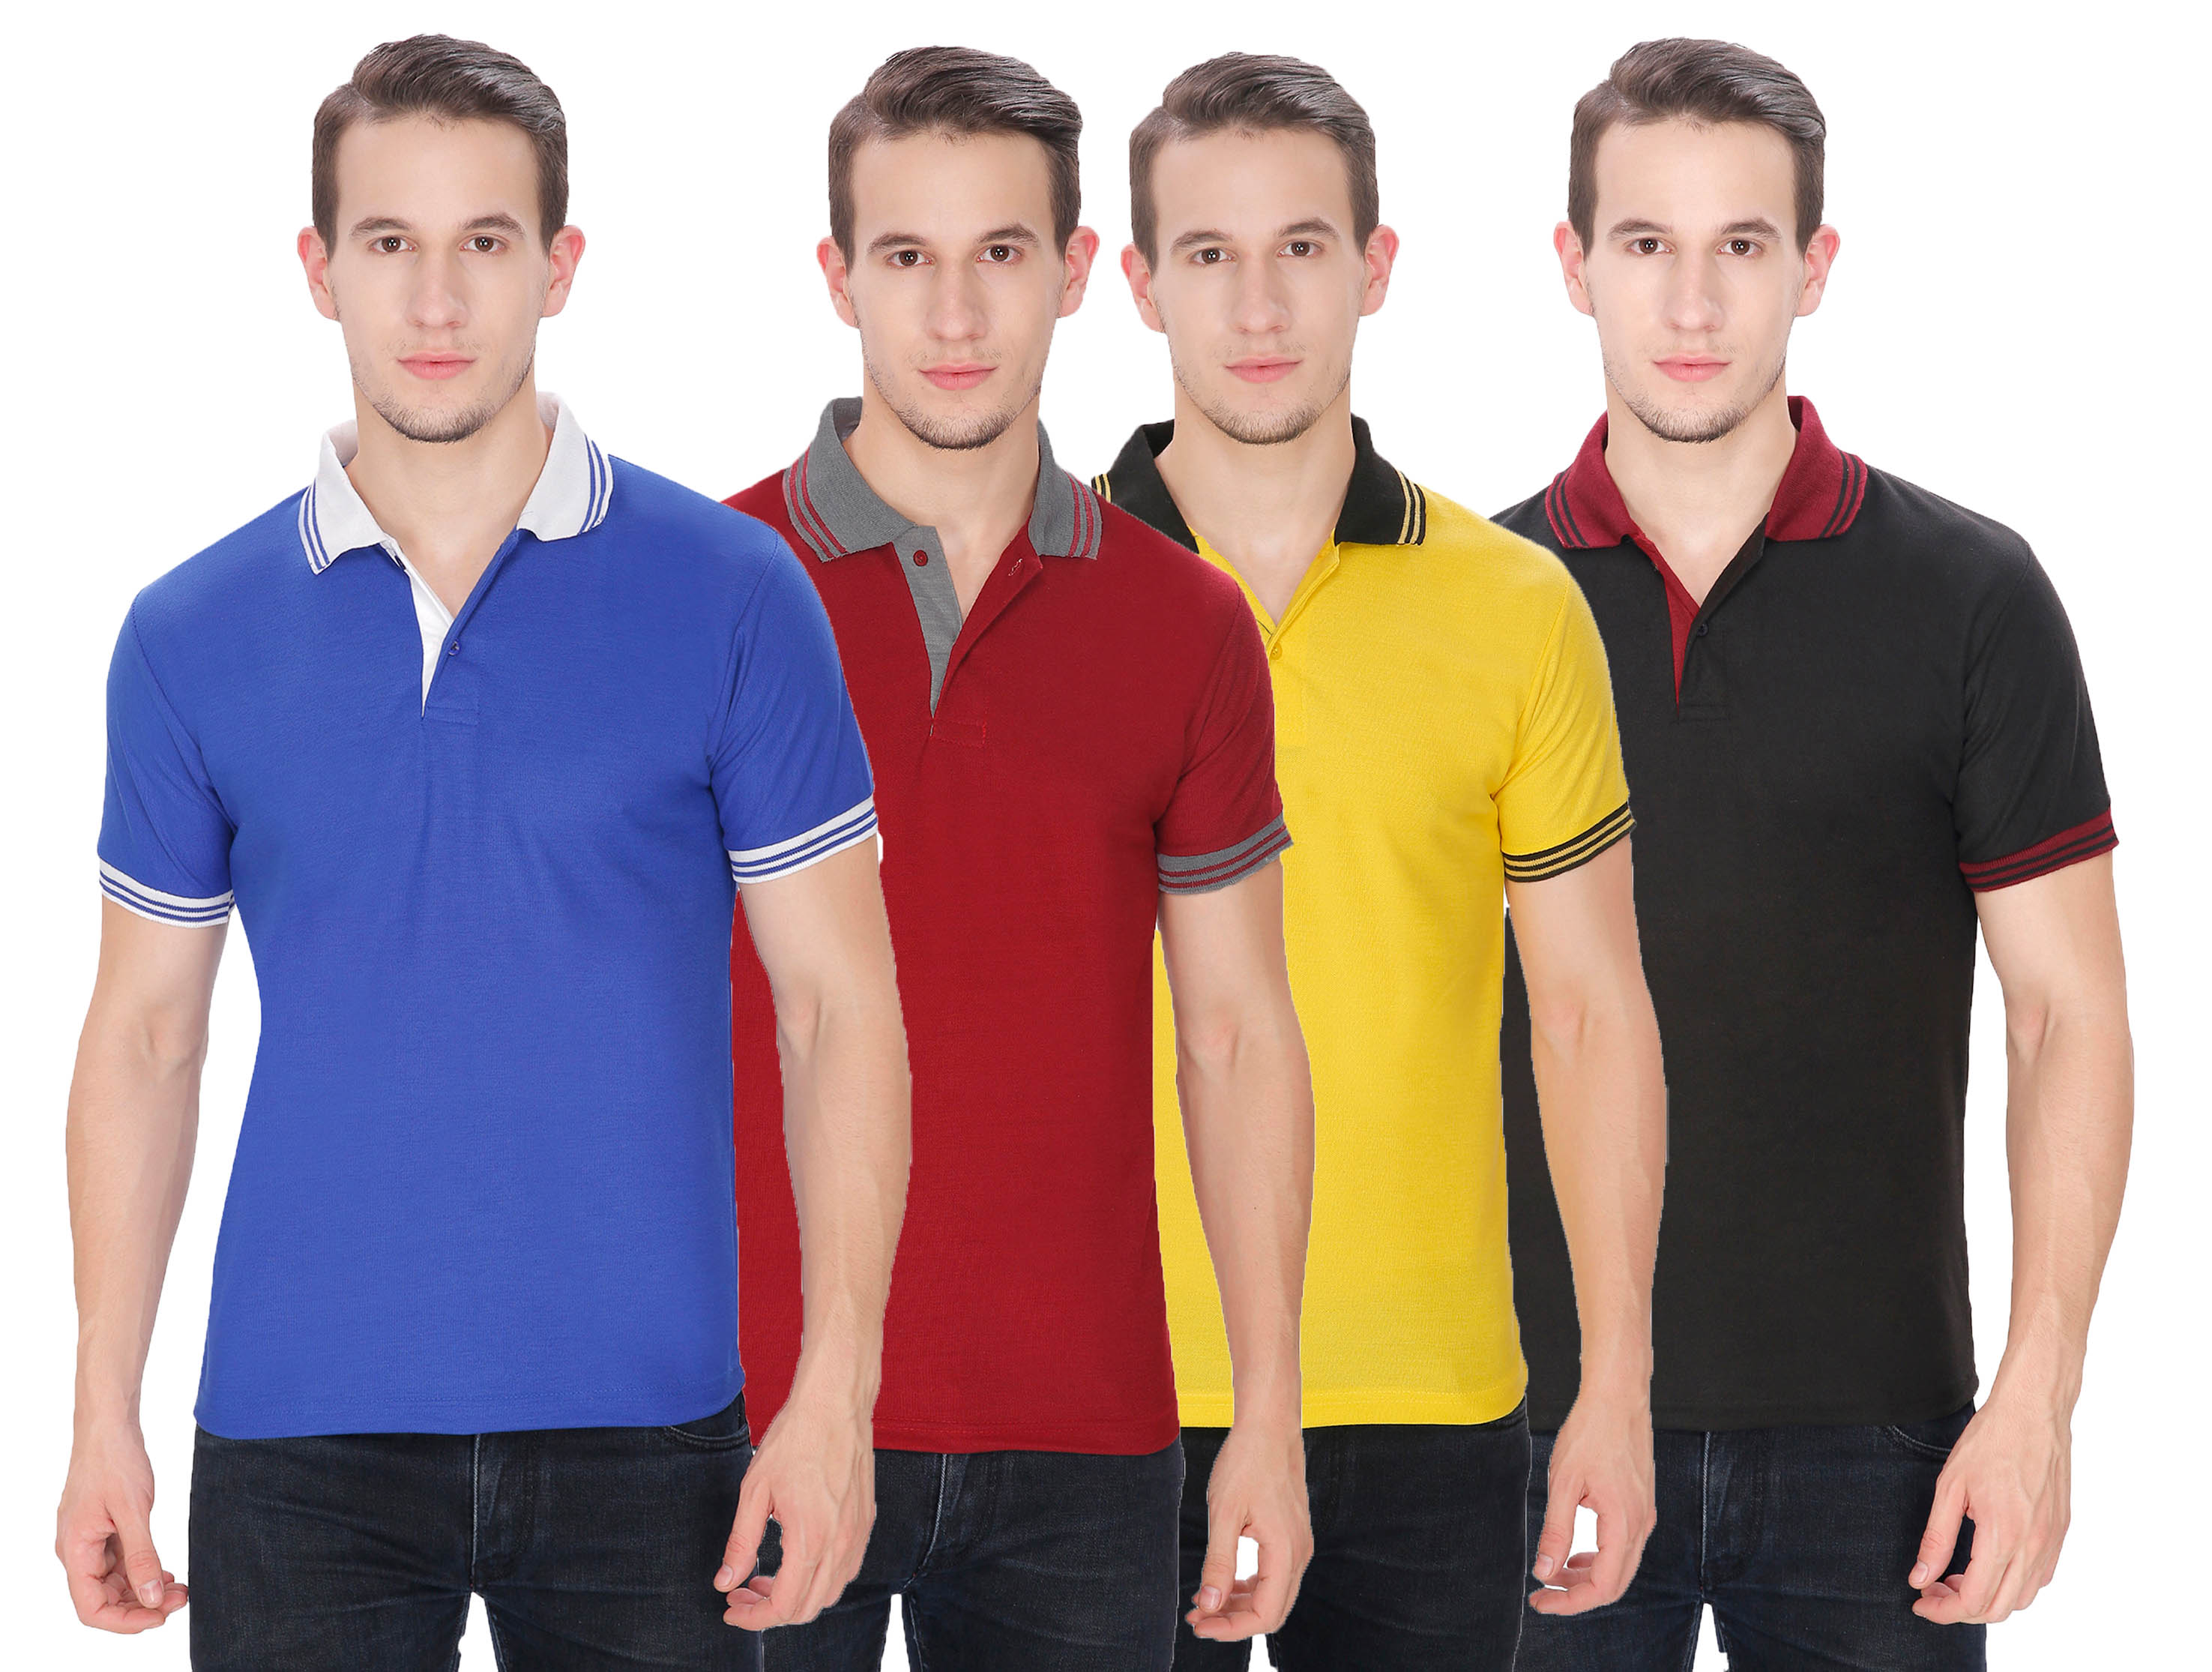 Baremoda Men's Black, Maroon, Yellow And Blue Plain Cotton Polo Collar T Shirt  Pack of 4